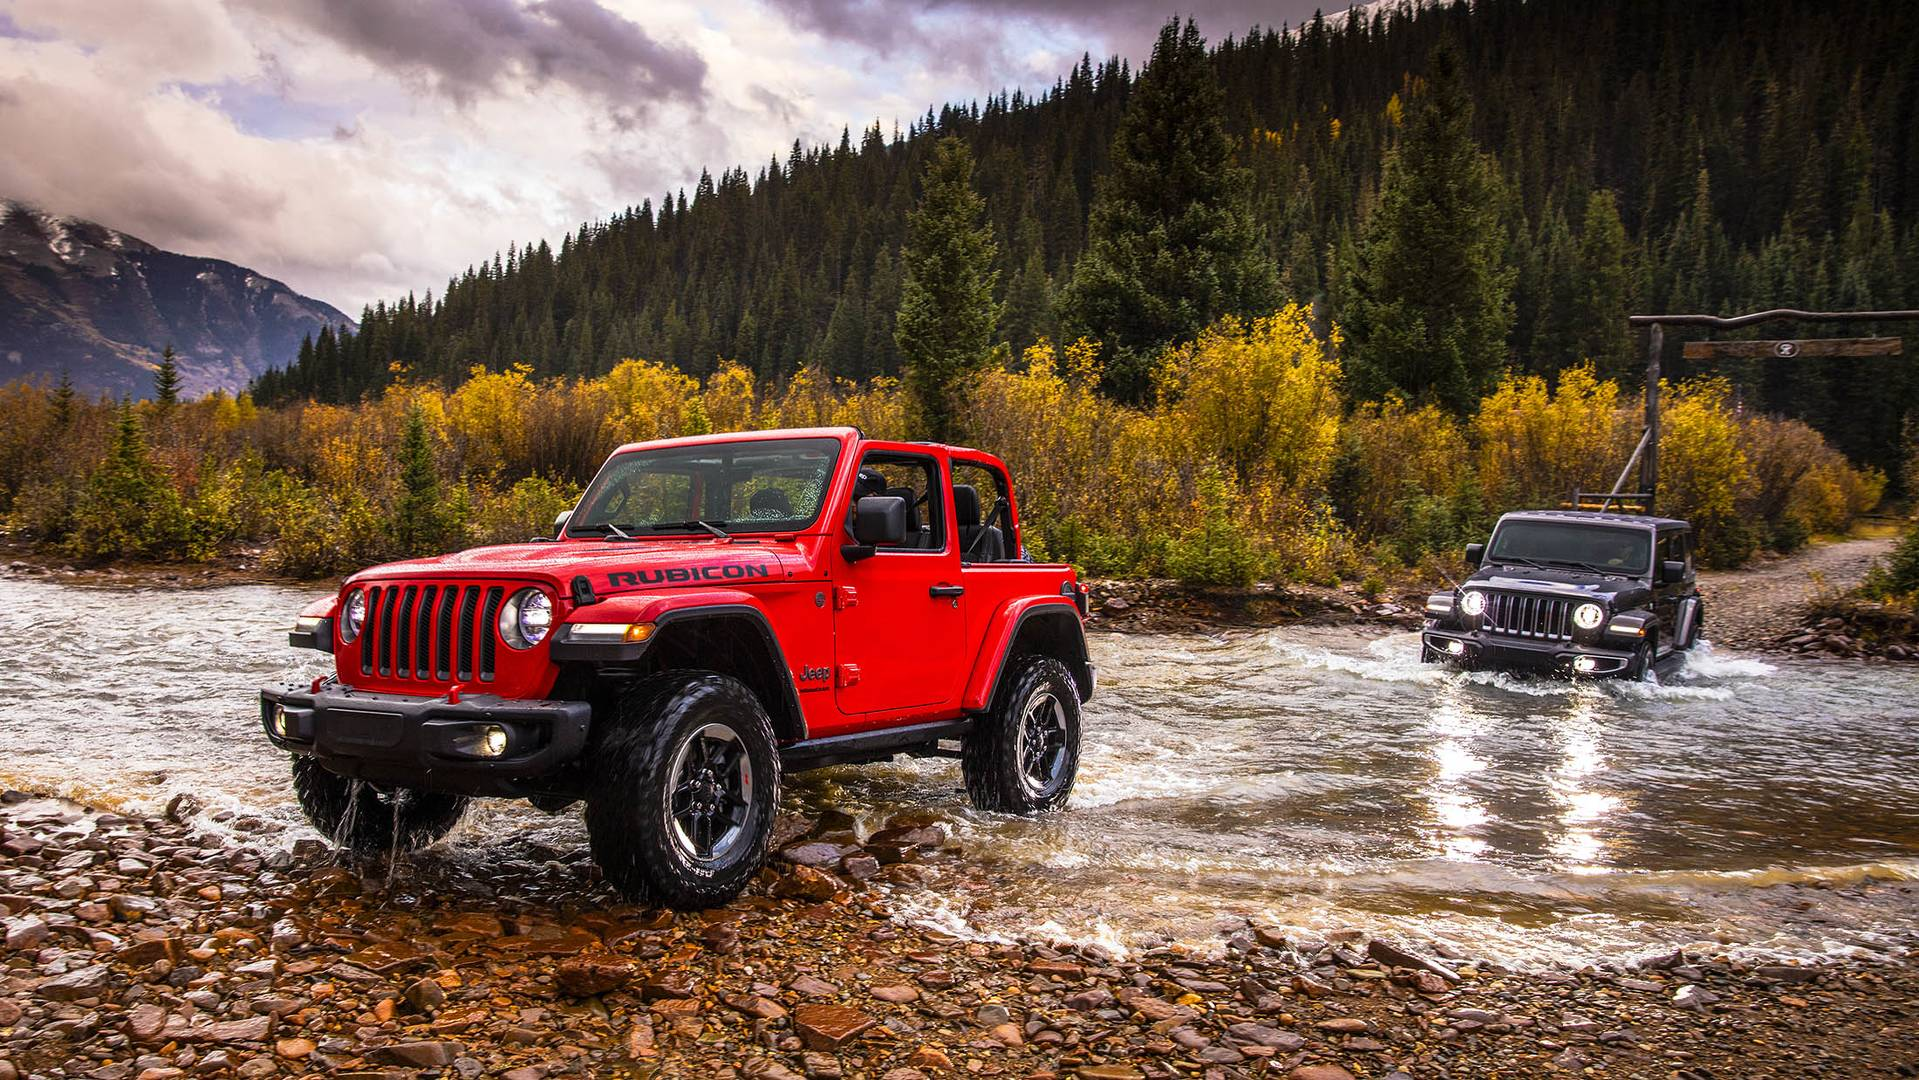 2030 Jeep Wrangler To Be Designed By High School Students